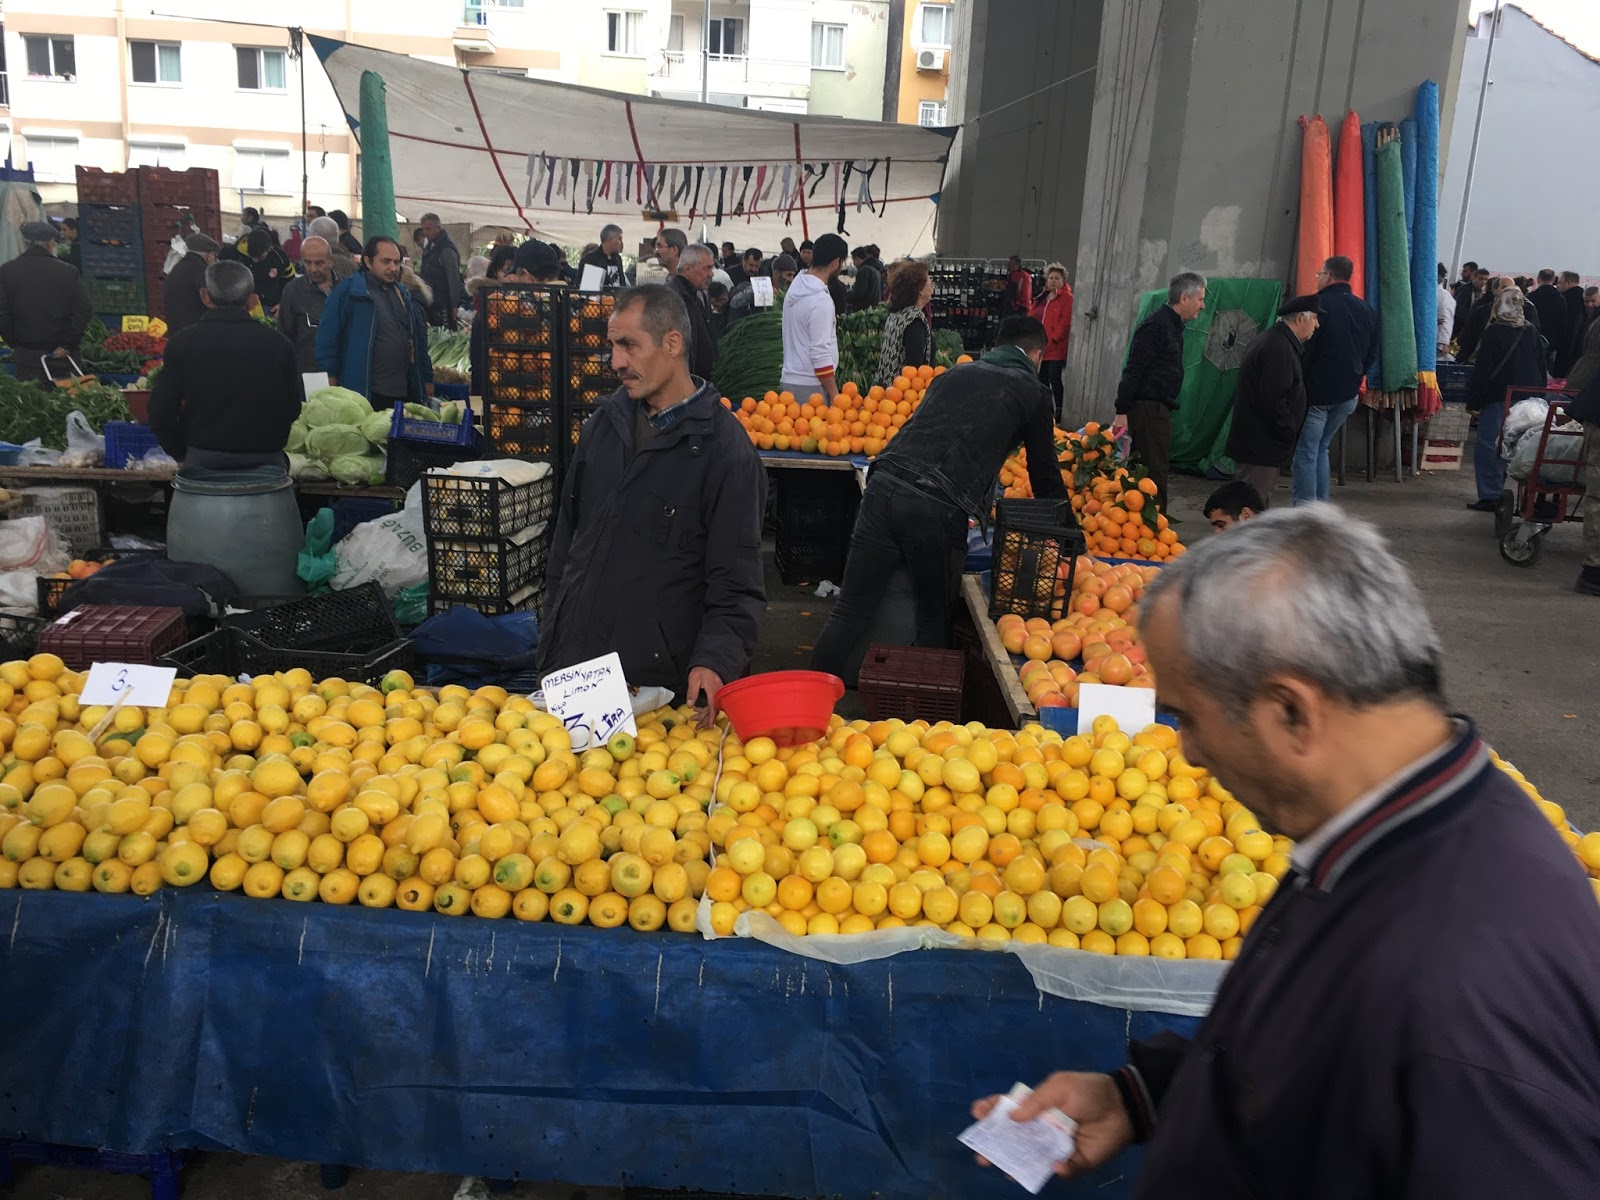 LeeZe visits Izmir Sunday farmer's market. Citrus sellers